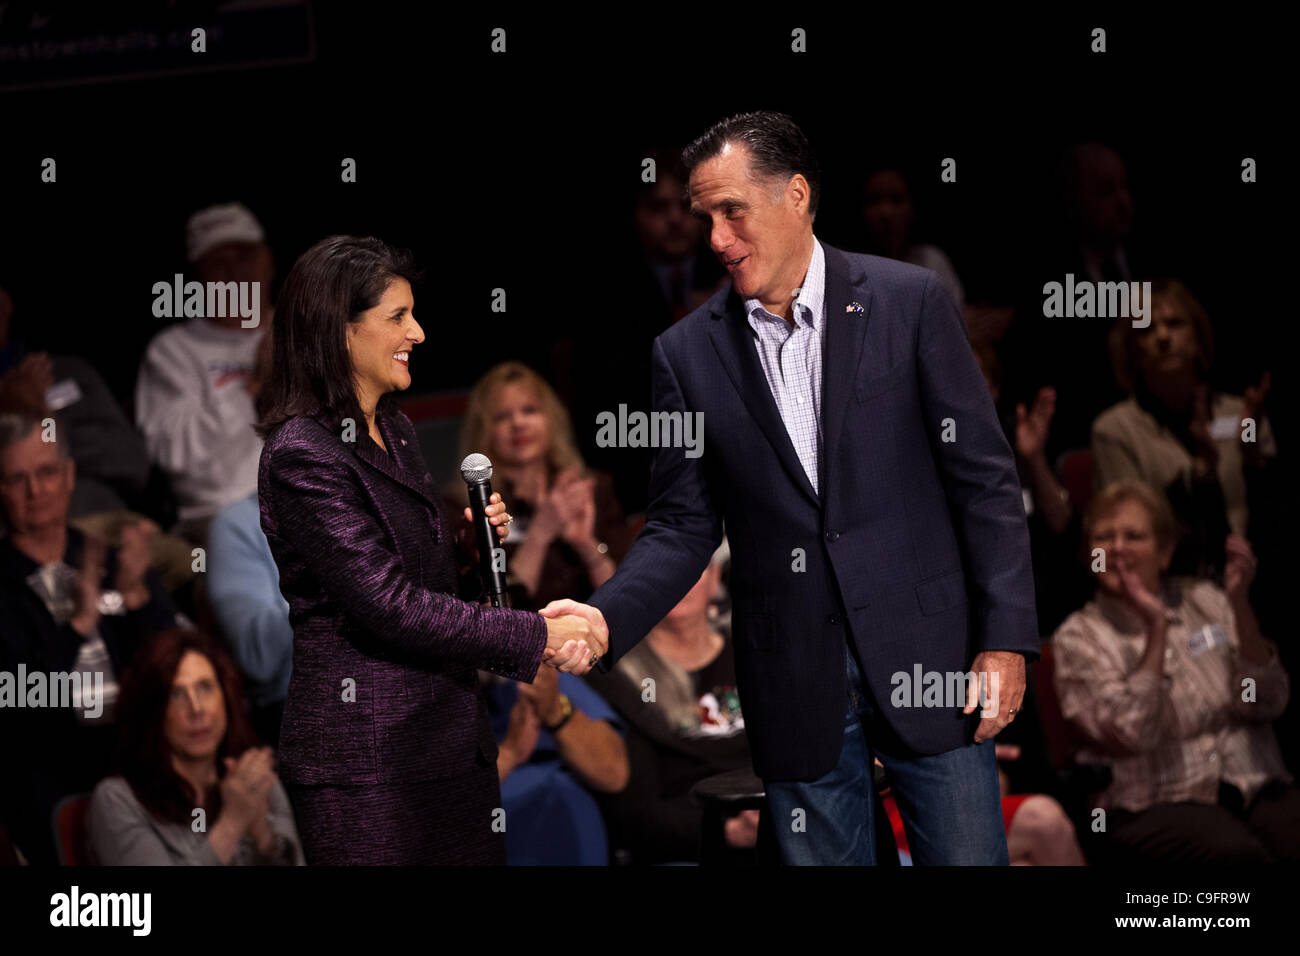 Republican presidential candidate Gov. Mitt Romney with Gov. Nikki Haley during a town hall meeting on December - Stock Image